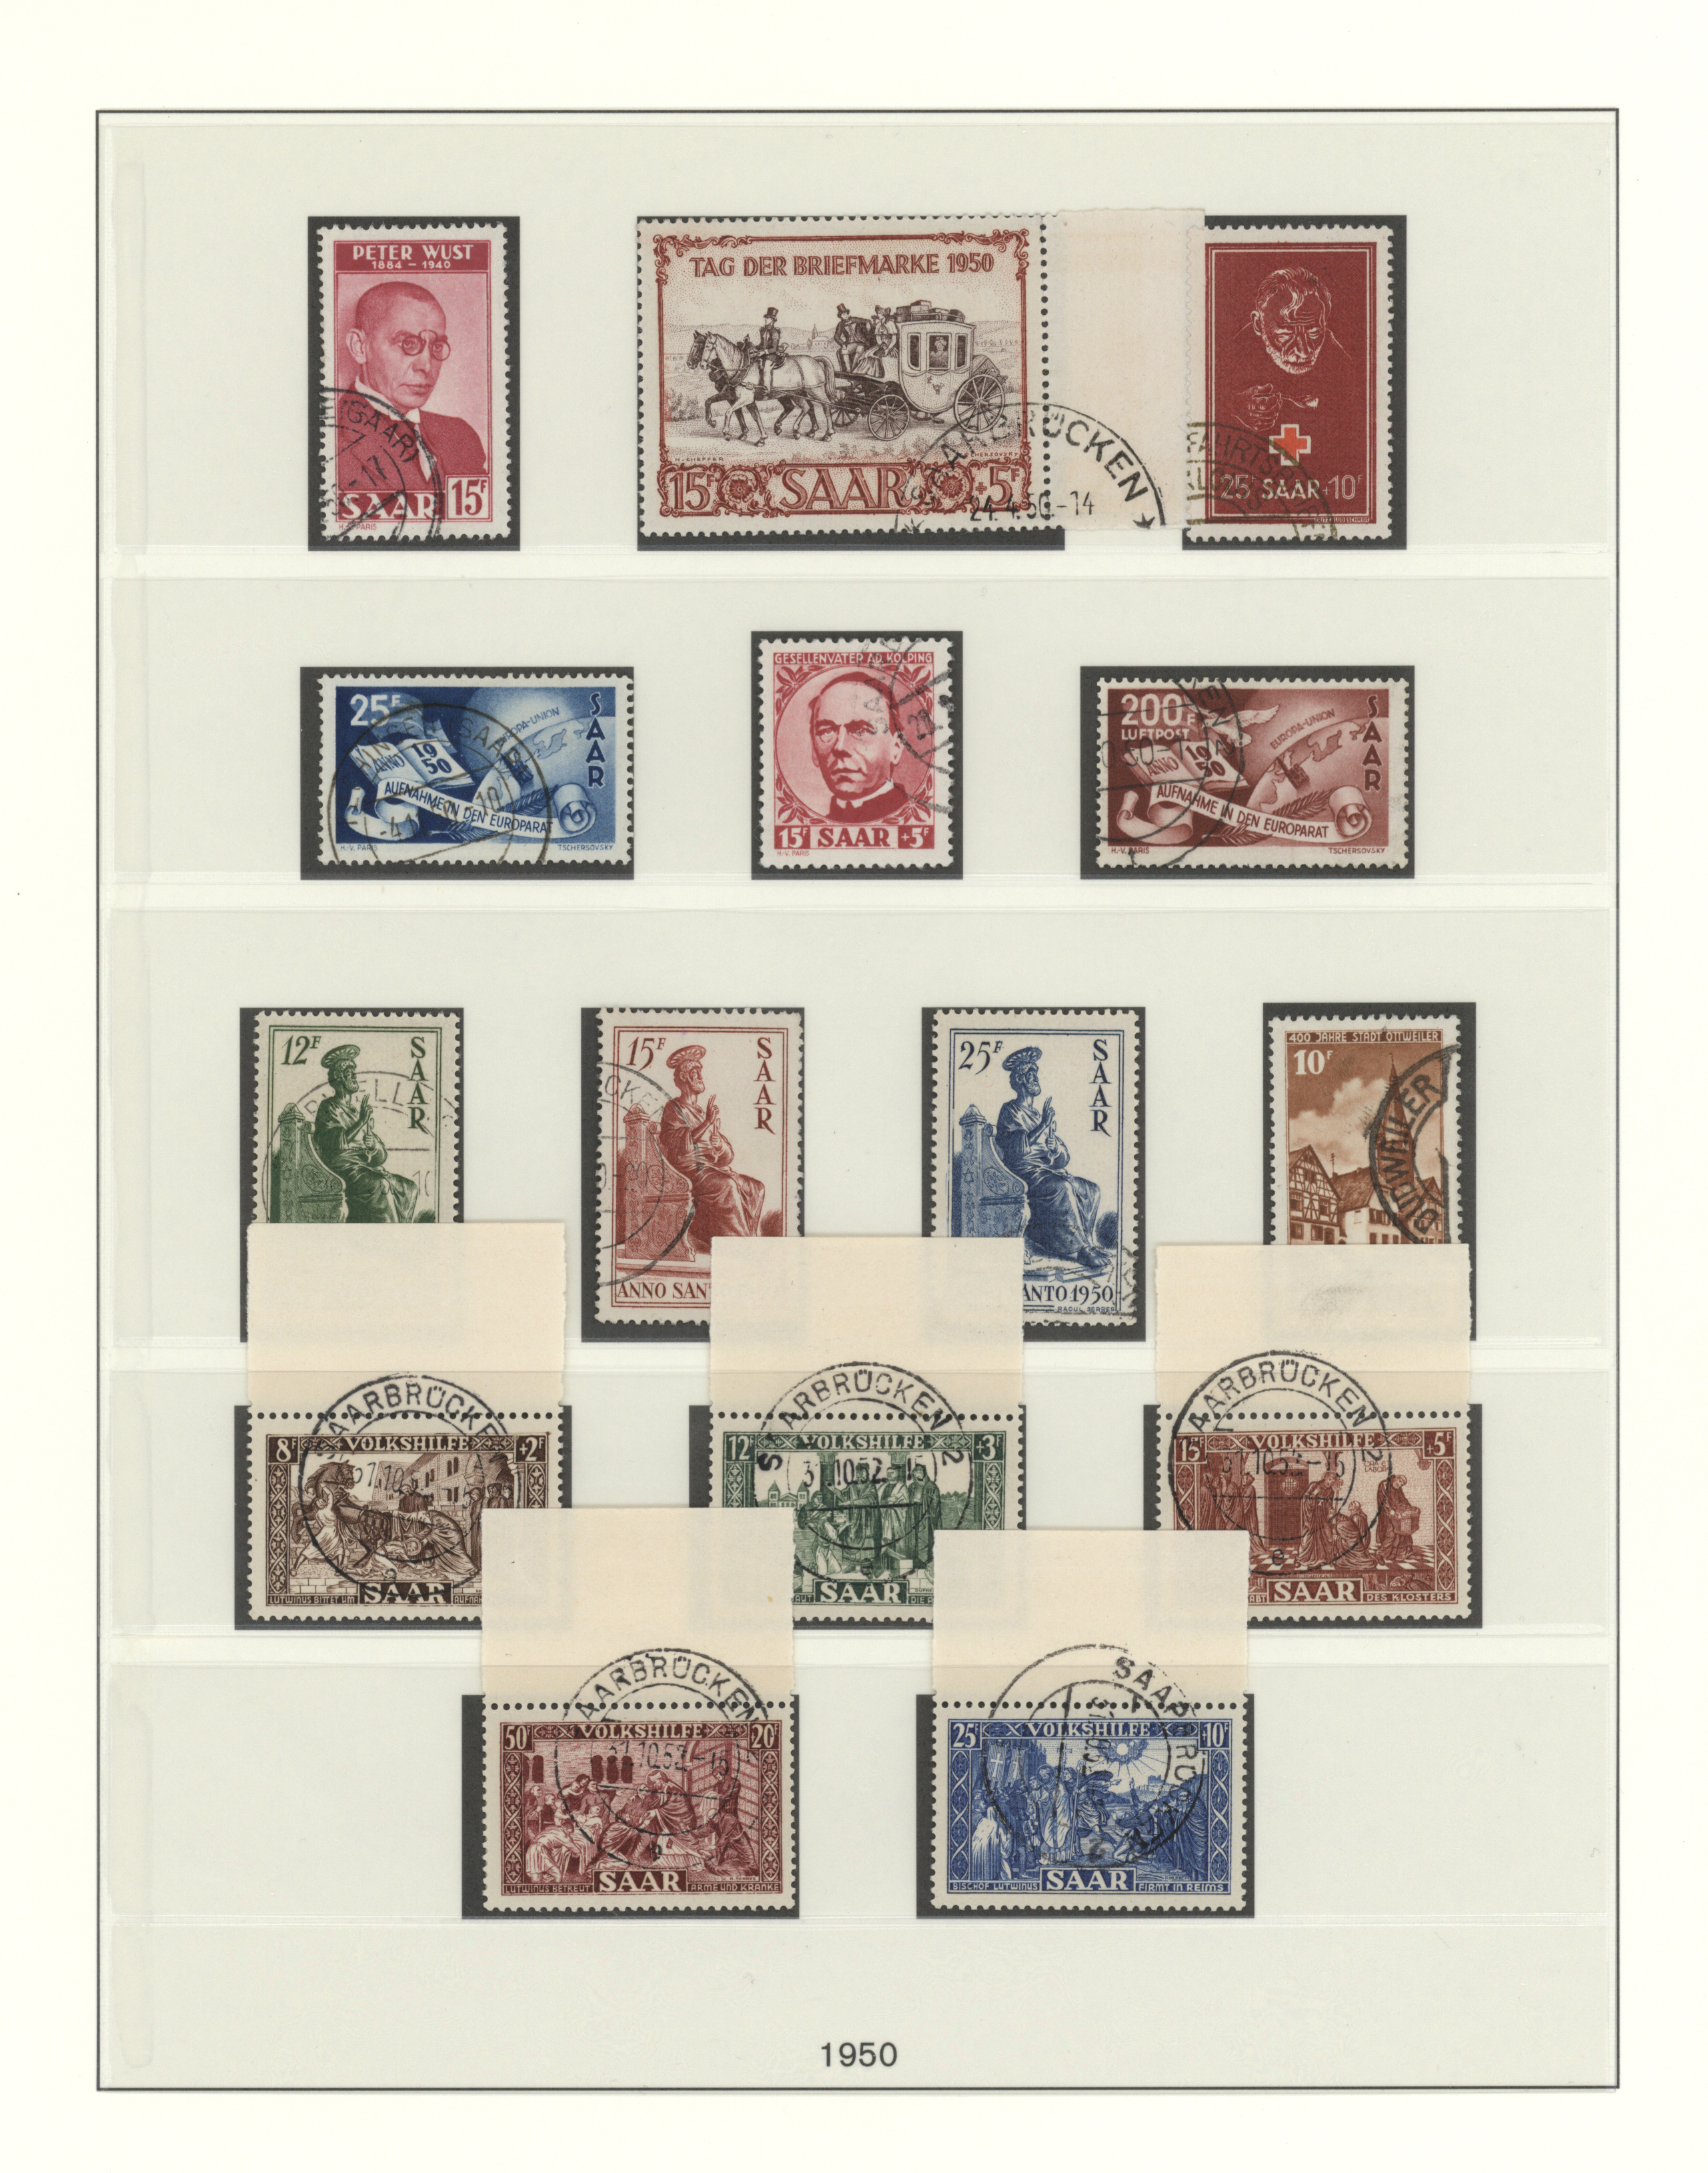 Lot 38290 - Saarland (1947/56)  -  Auktionshaus Christoph Gärtner GmbH & Co. KG Collections Germany,  Collections Supplement, Surprise boxes #39 Day 7